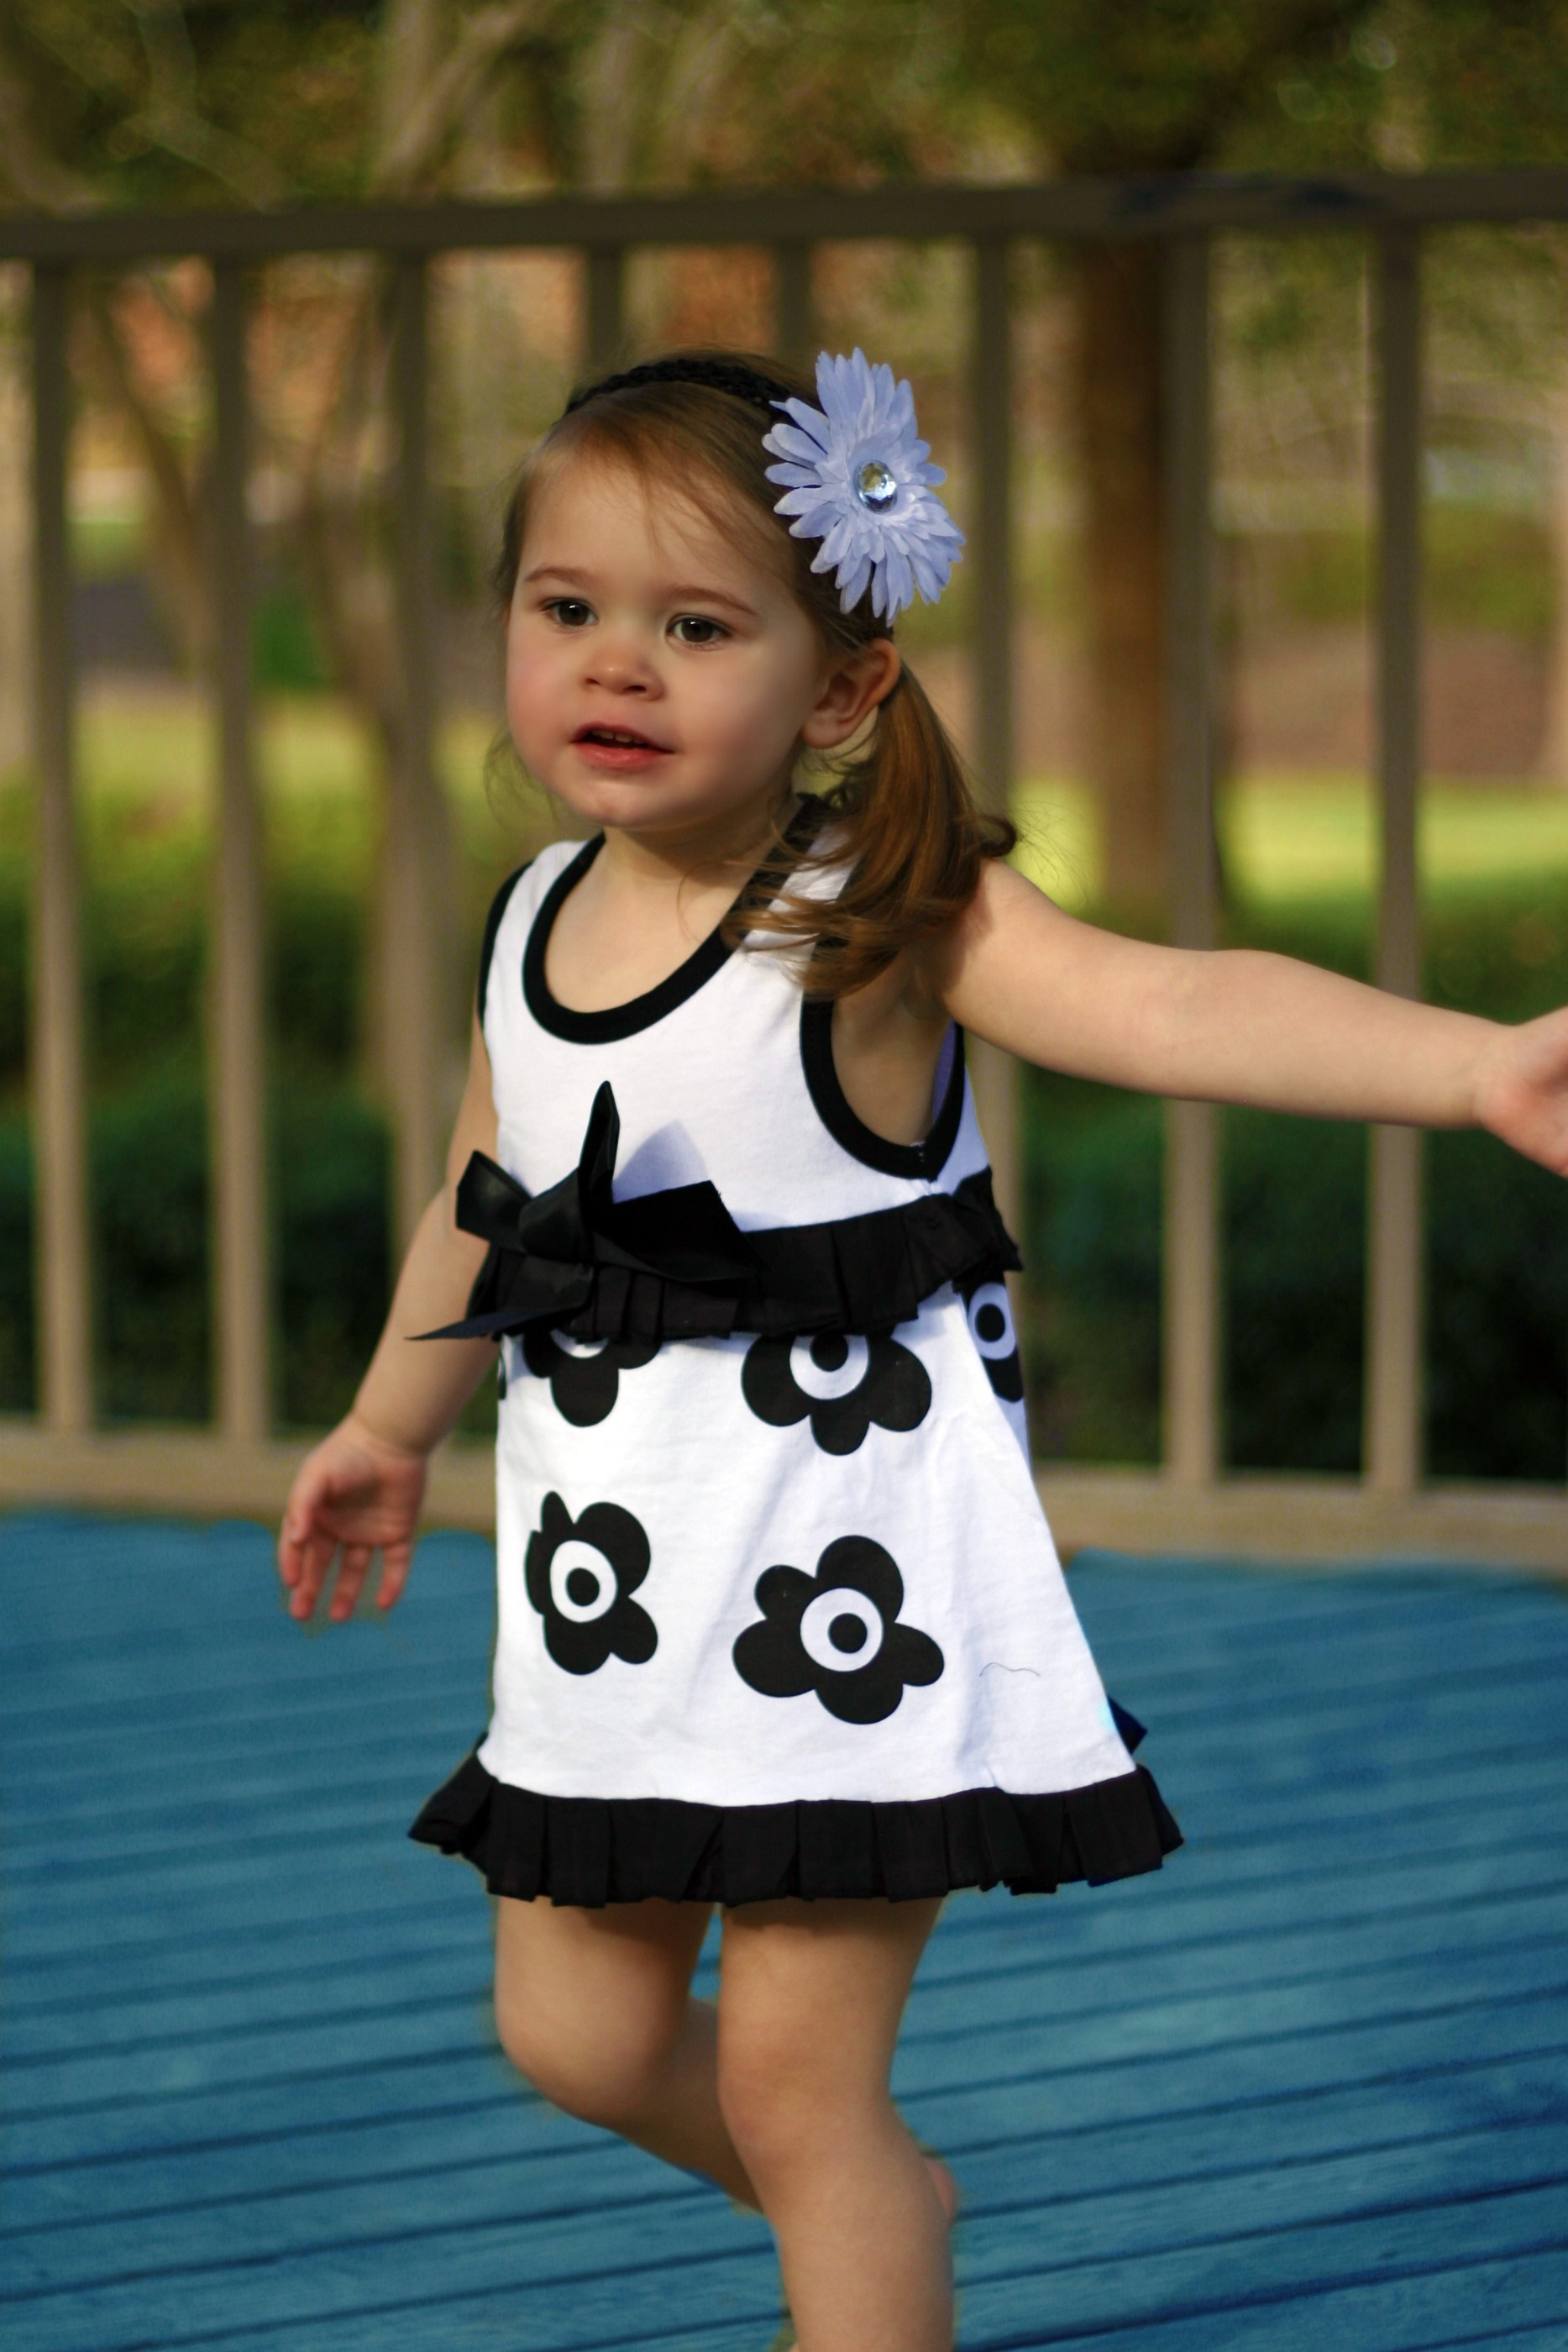 Handmade_handpicked_boutique_doomagic_dress_in_black_and_white_flower_design_one_piece_romper_magic_cube_all_rights_reserved_on_this_photo_original